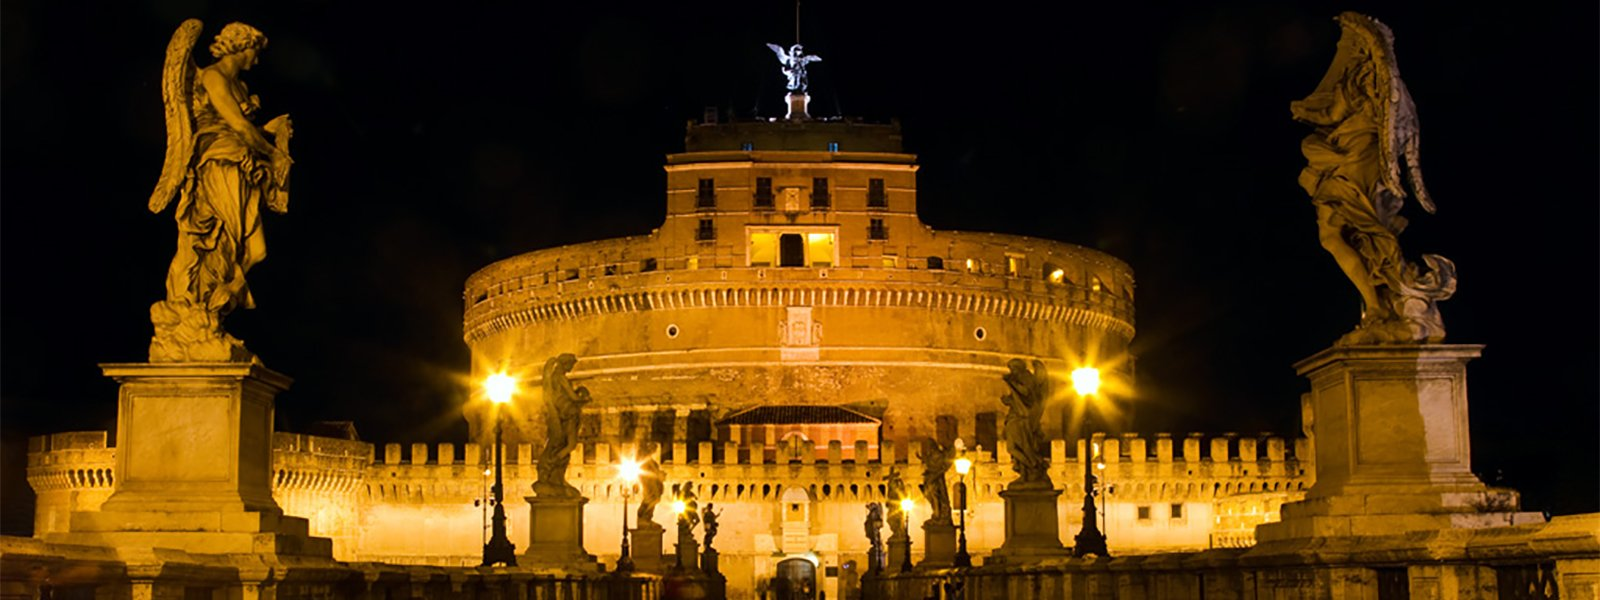 Fiumicino limousine transportation civitavecchia - Transfer from rome to civitavecchia port ...